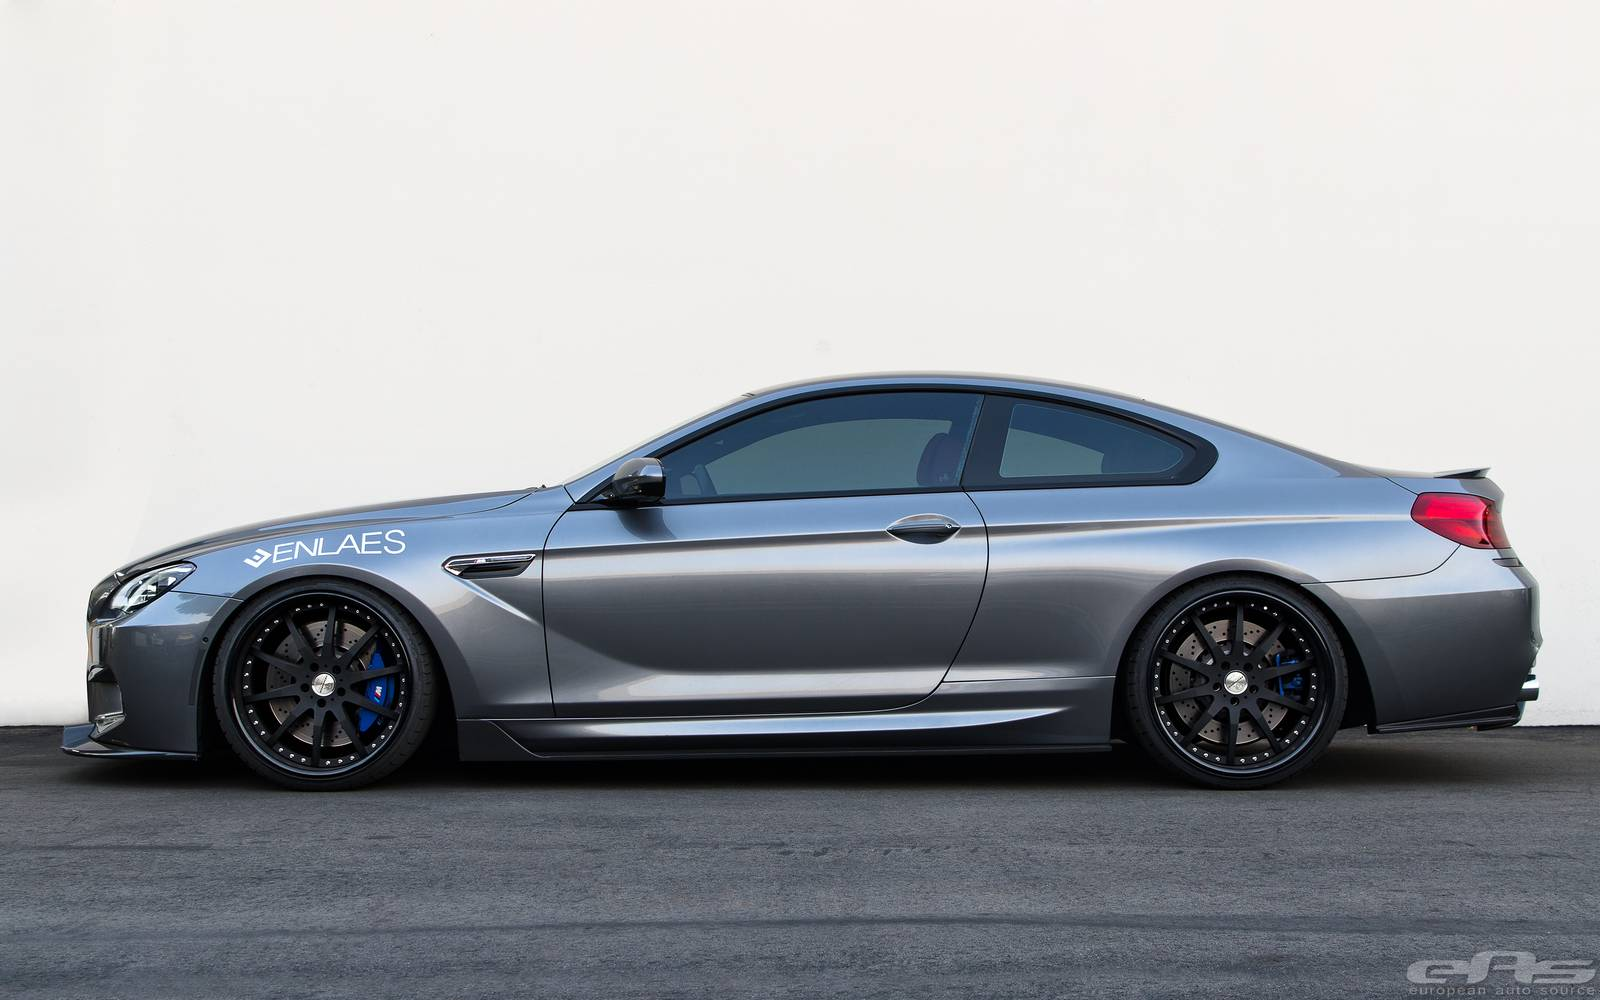 Space Gray Bmw F13 M6 By Eas